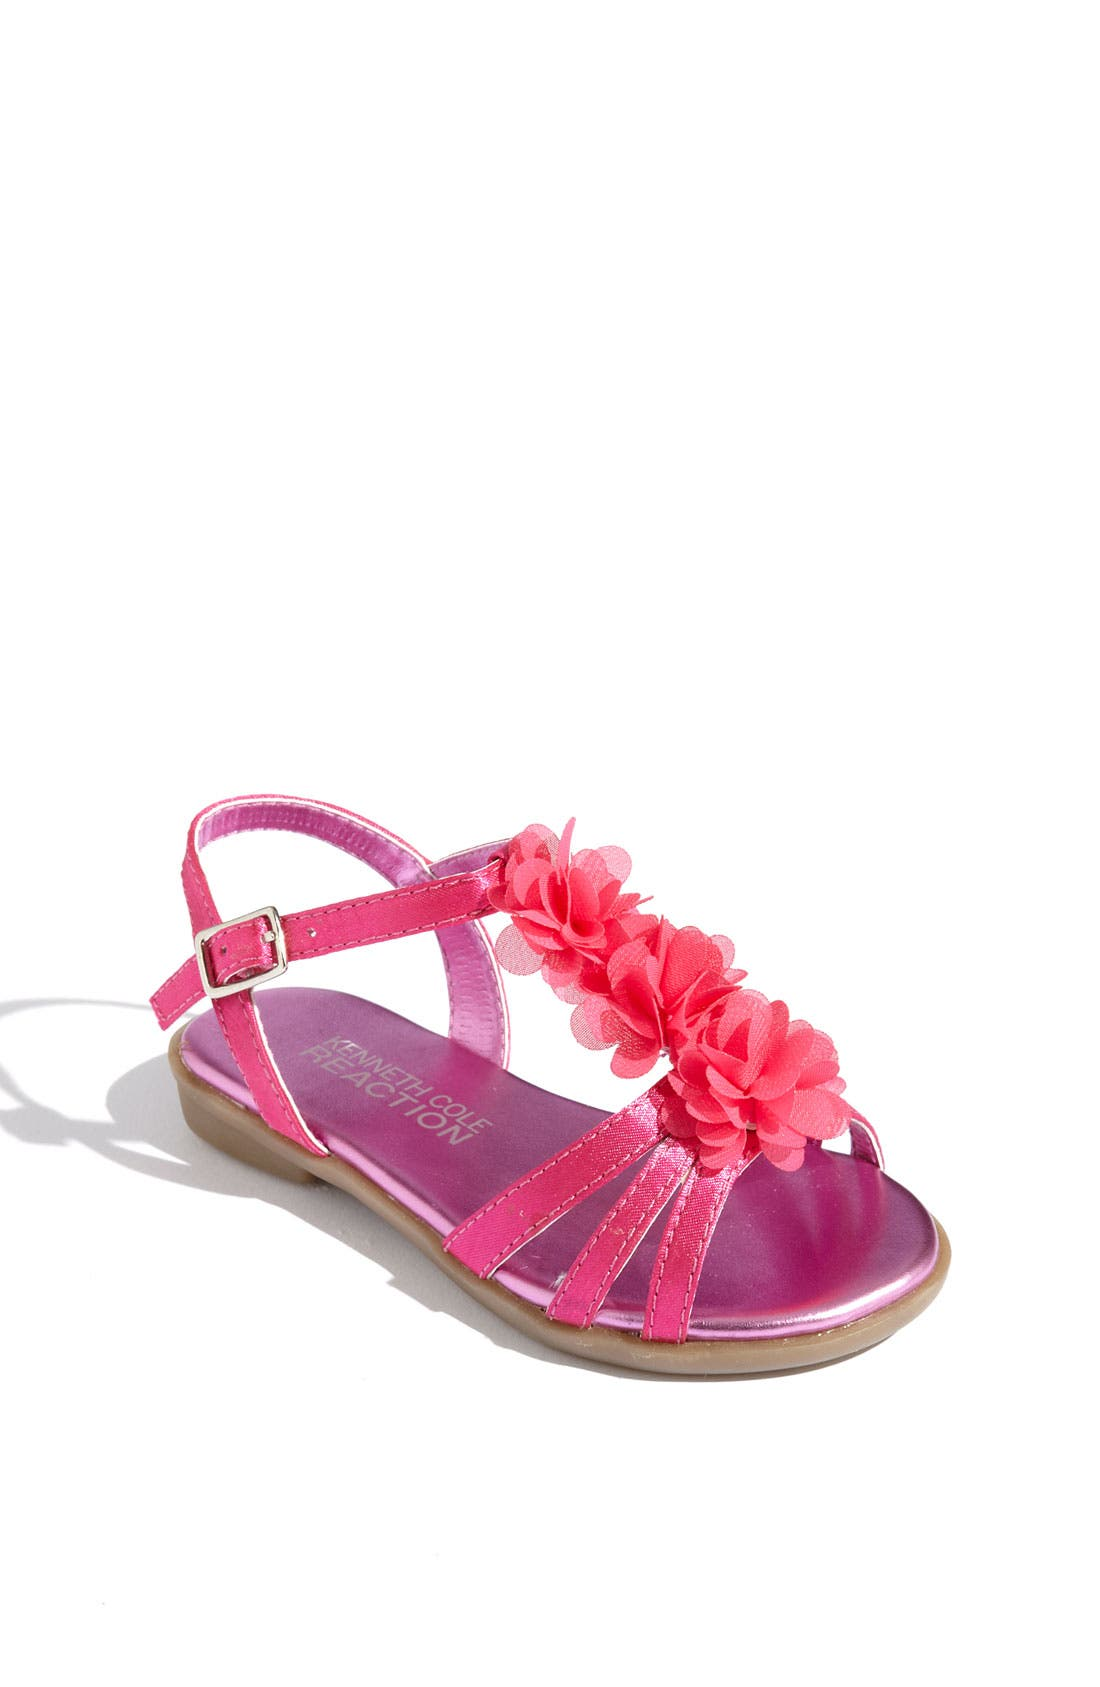 Main Image - Kenneth Cole Reaction 'Face to Chase 2' Sandal (Walker & Toddler)